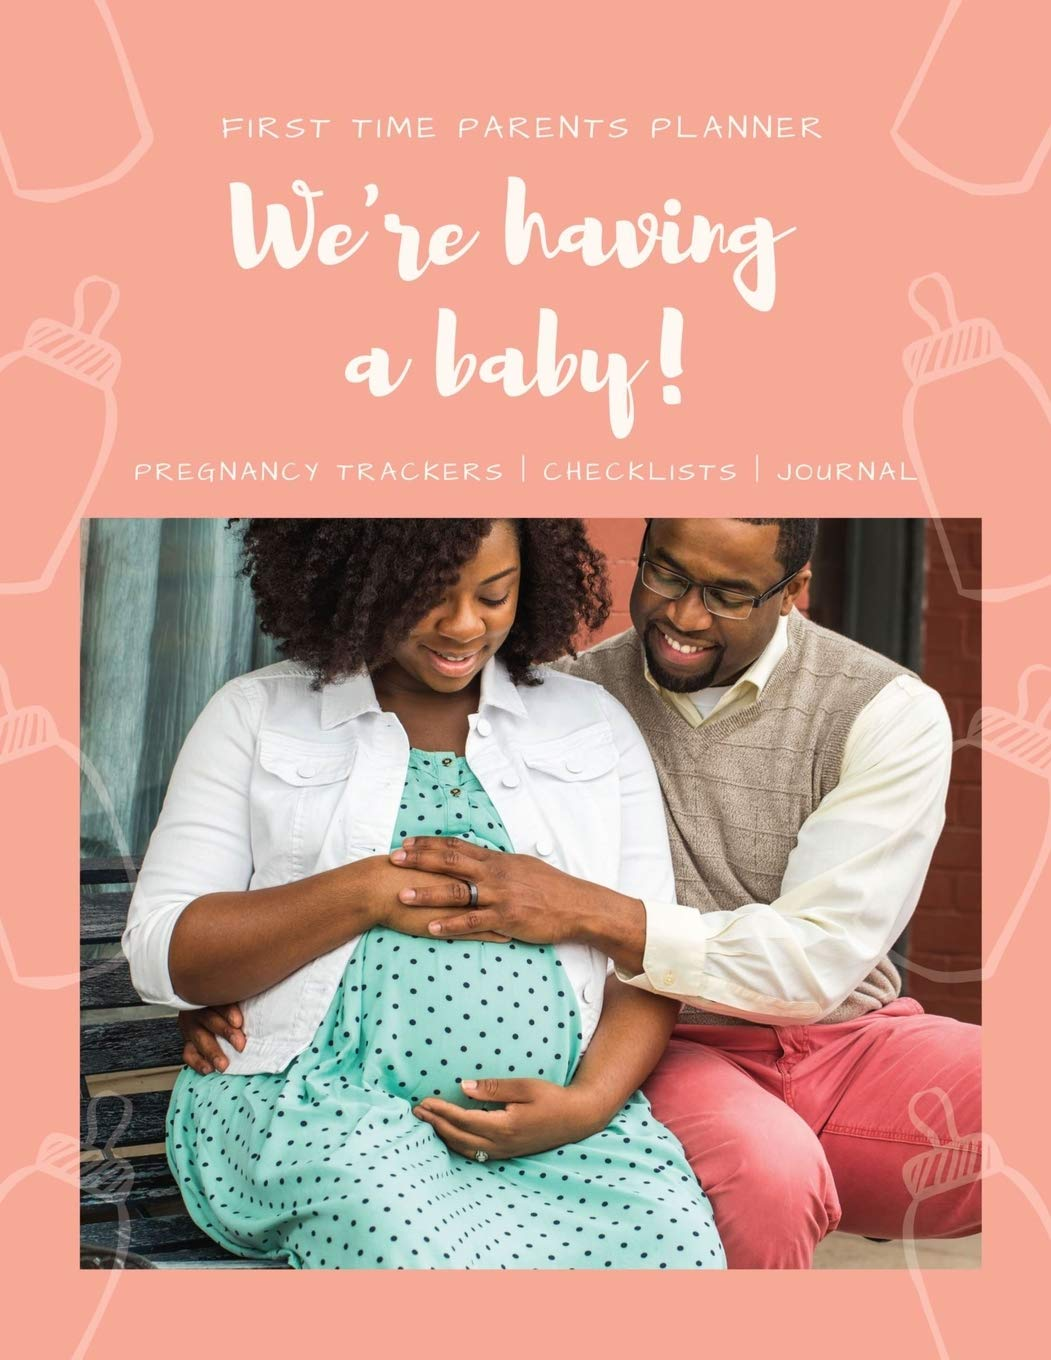 We Re Having A Baby Our Journal First Time Parents Pregnancy Planner 40 Week Pregnancy Journal Baby Shower Gift For Expectant Moms Knight Makayla L 9781699456415 Amazon Com Books